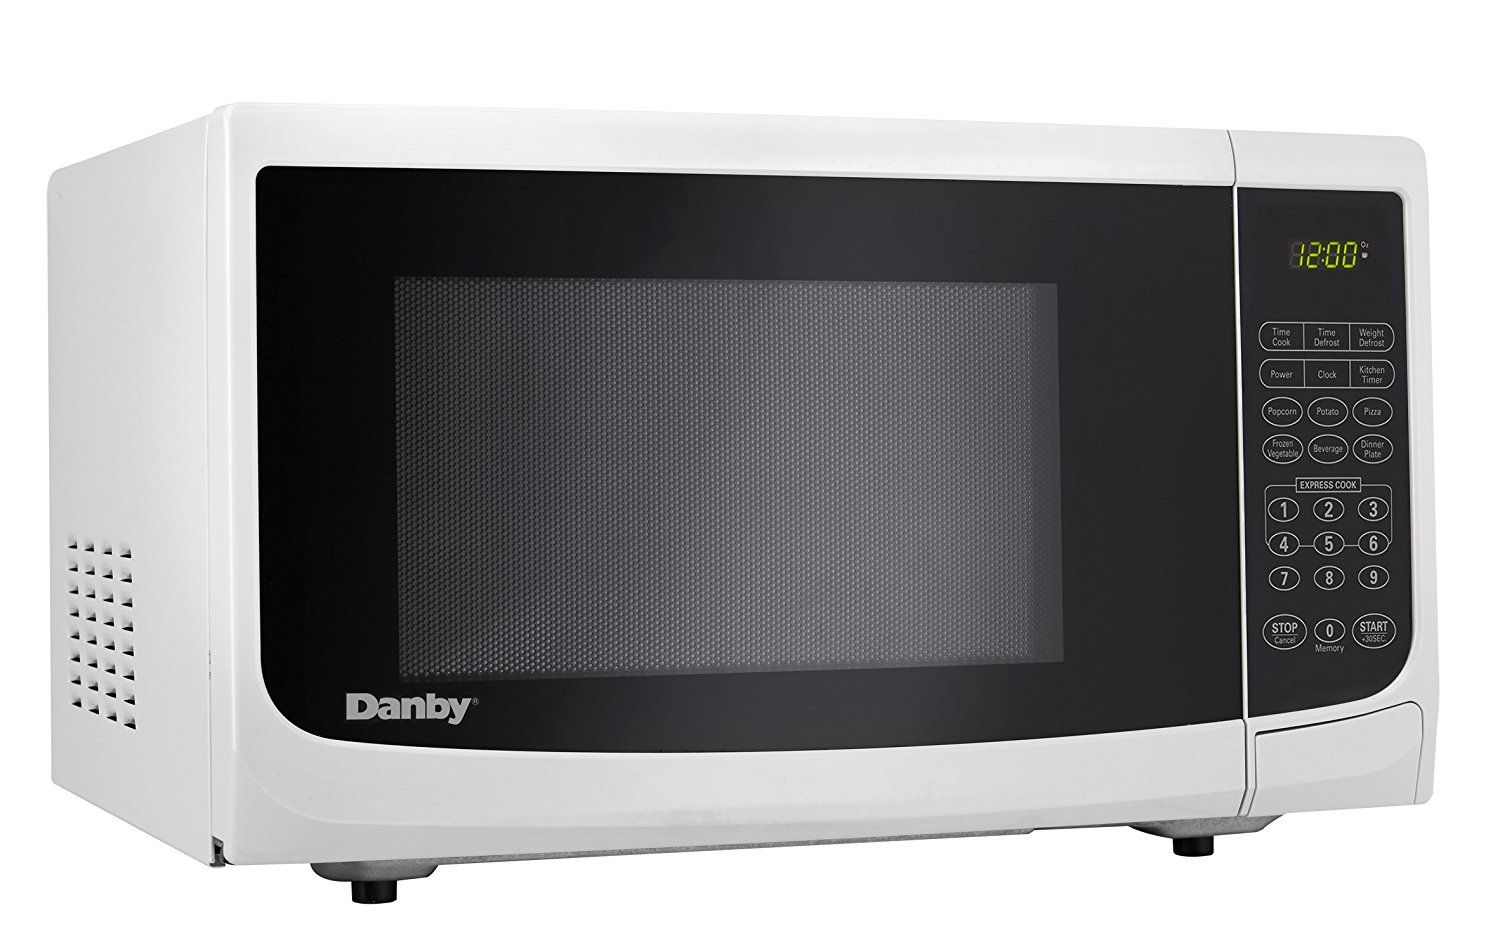 Danby 0 7 Cu Ft Countertop Microwave White This Is An Amazon